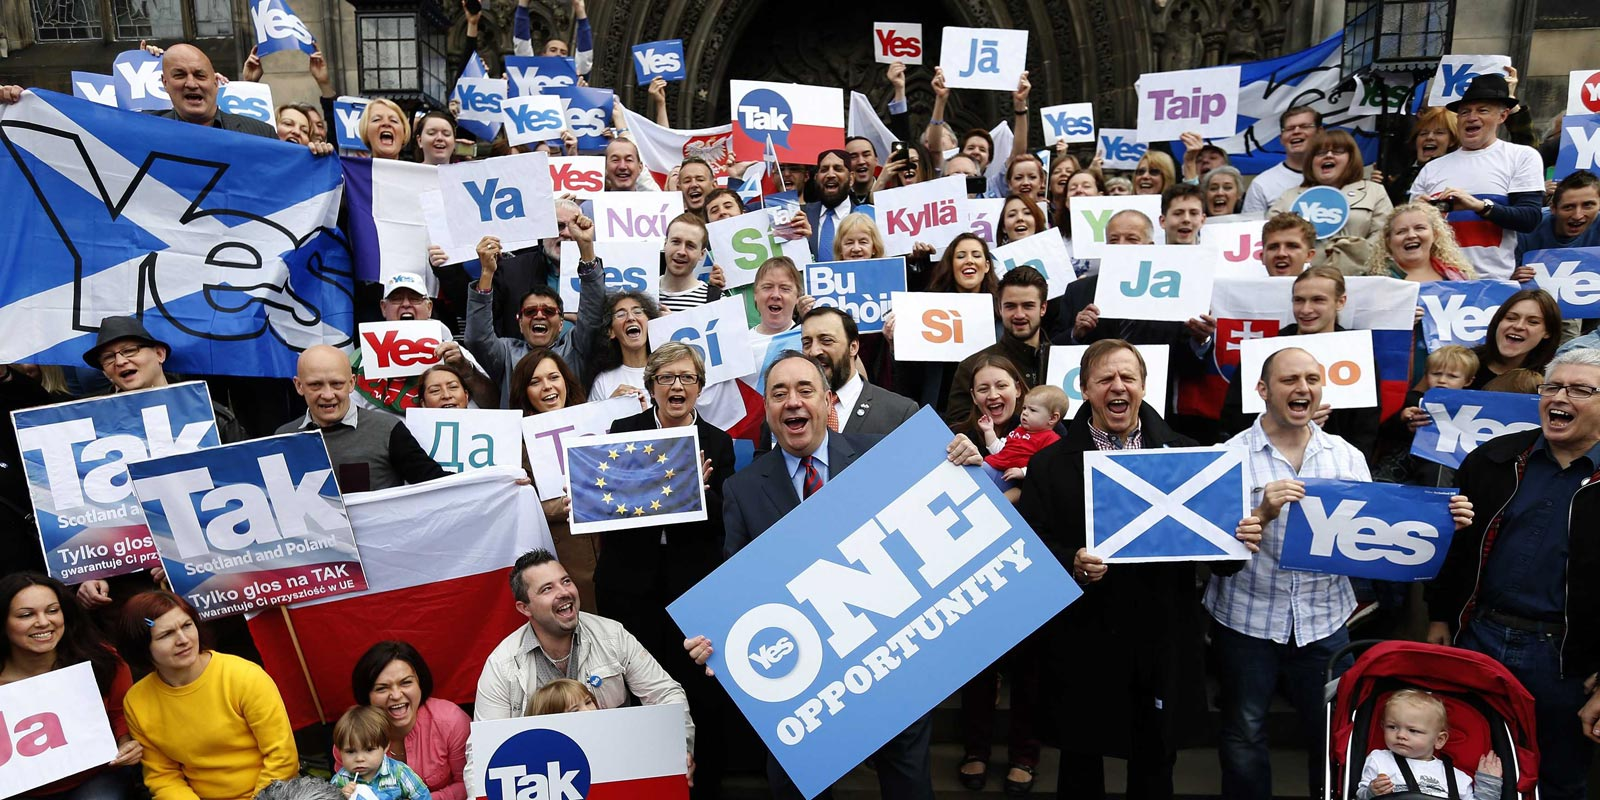 heres-how-david-cameron-blundered-into-letting-scotland-vote-on-its-own-independence